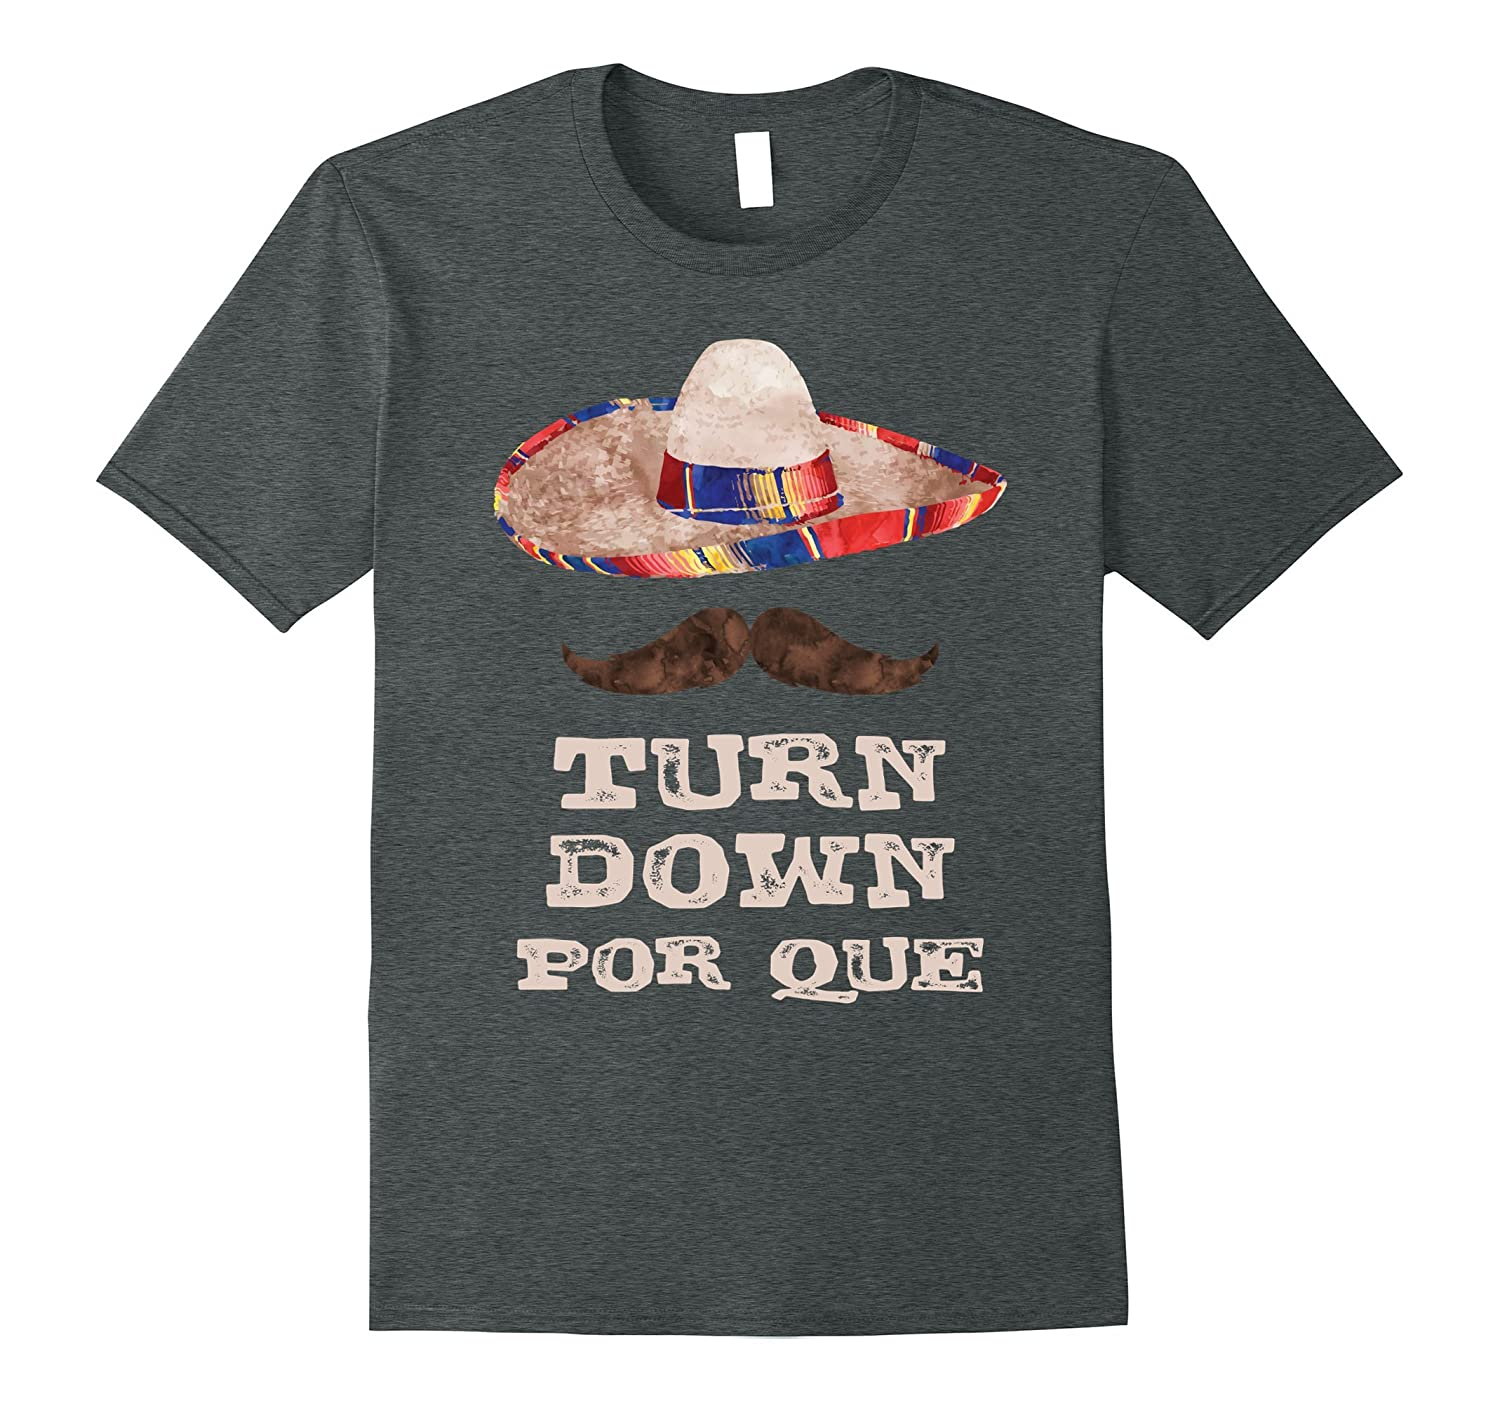 Turn Down Por Que T-Shirt Funny Tee for Cinco De Mayo Party-Vaci